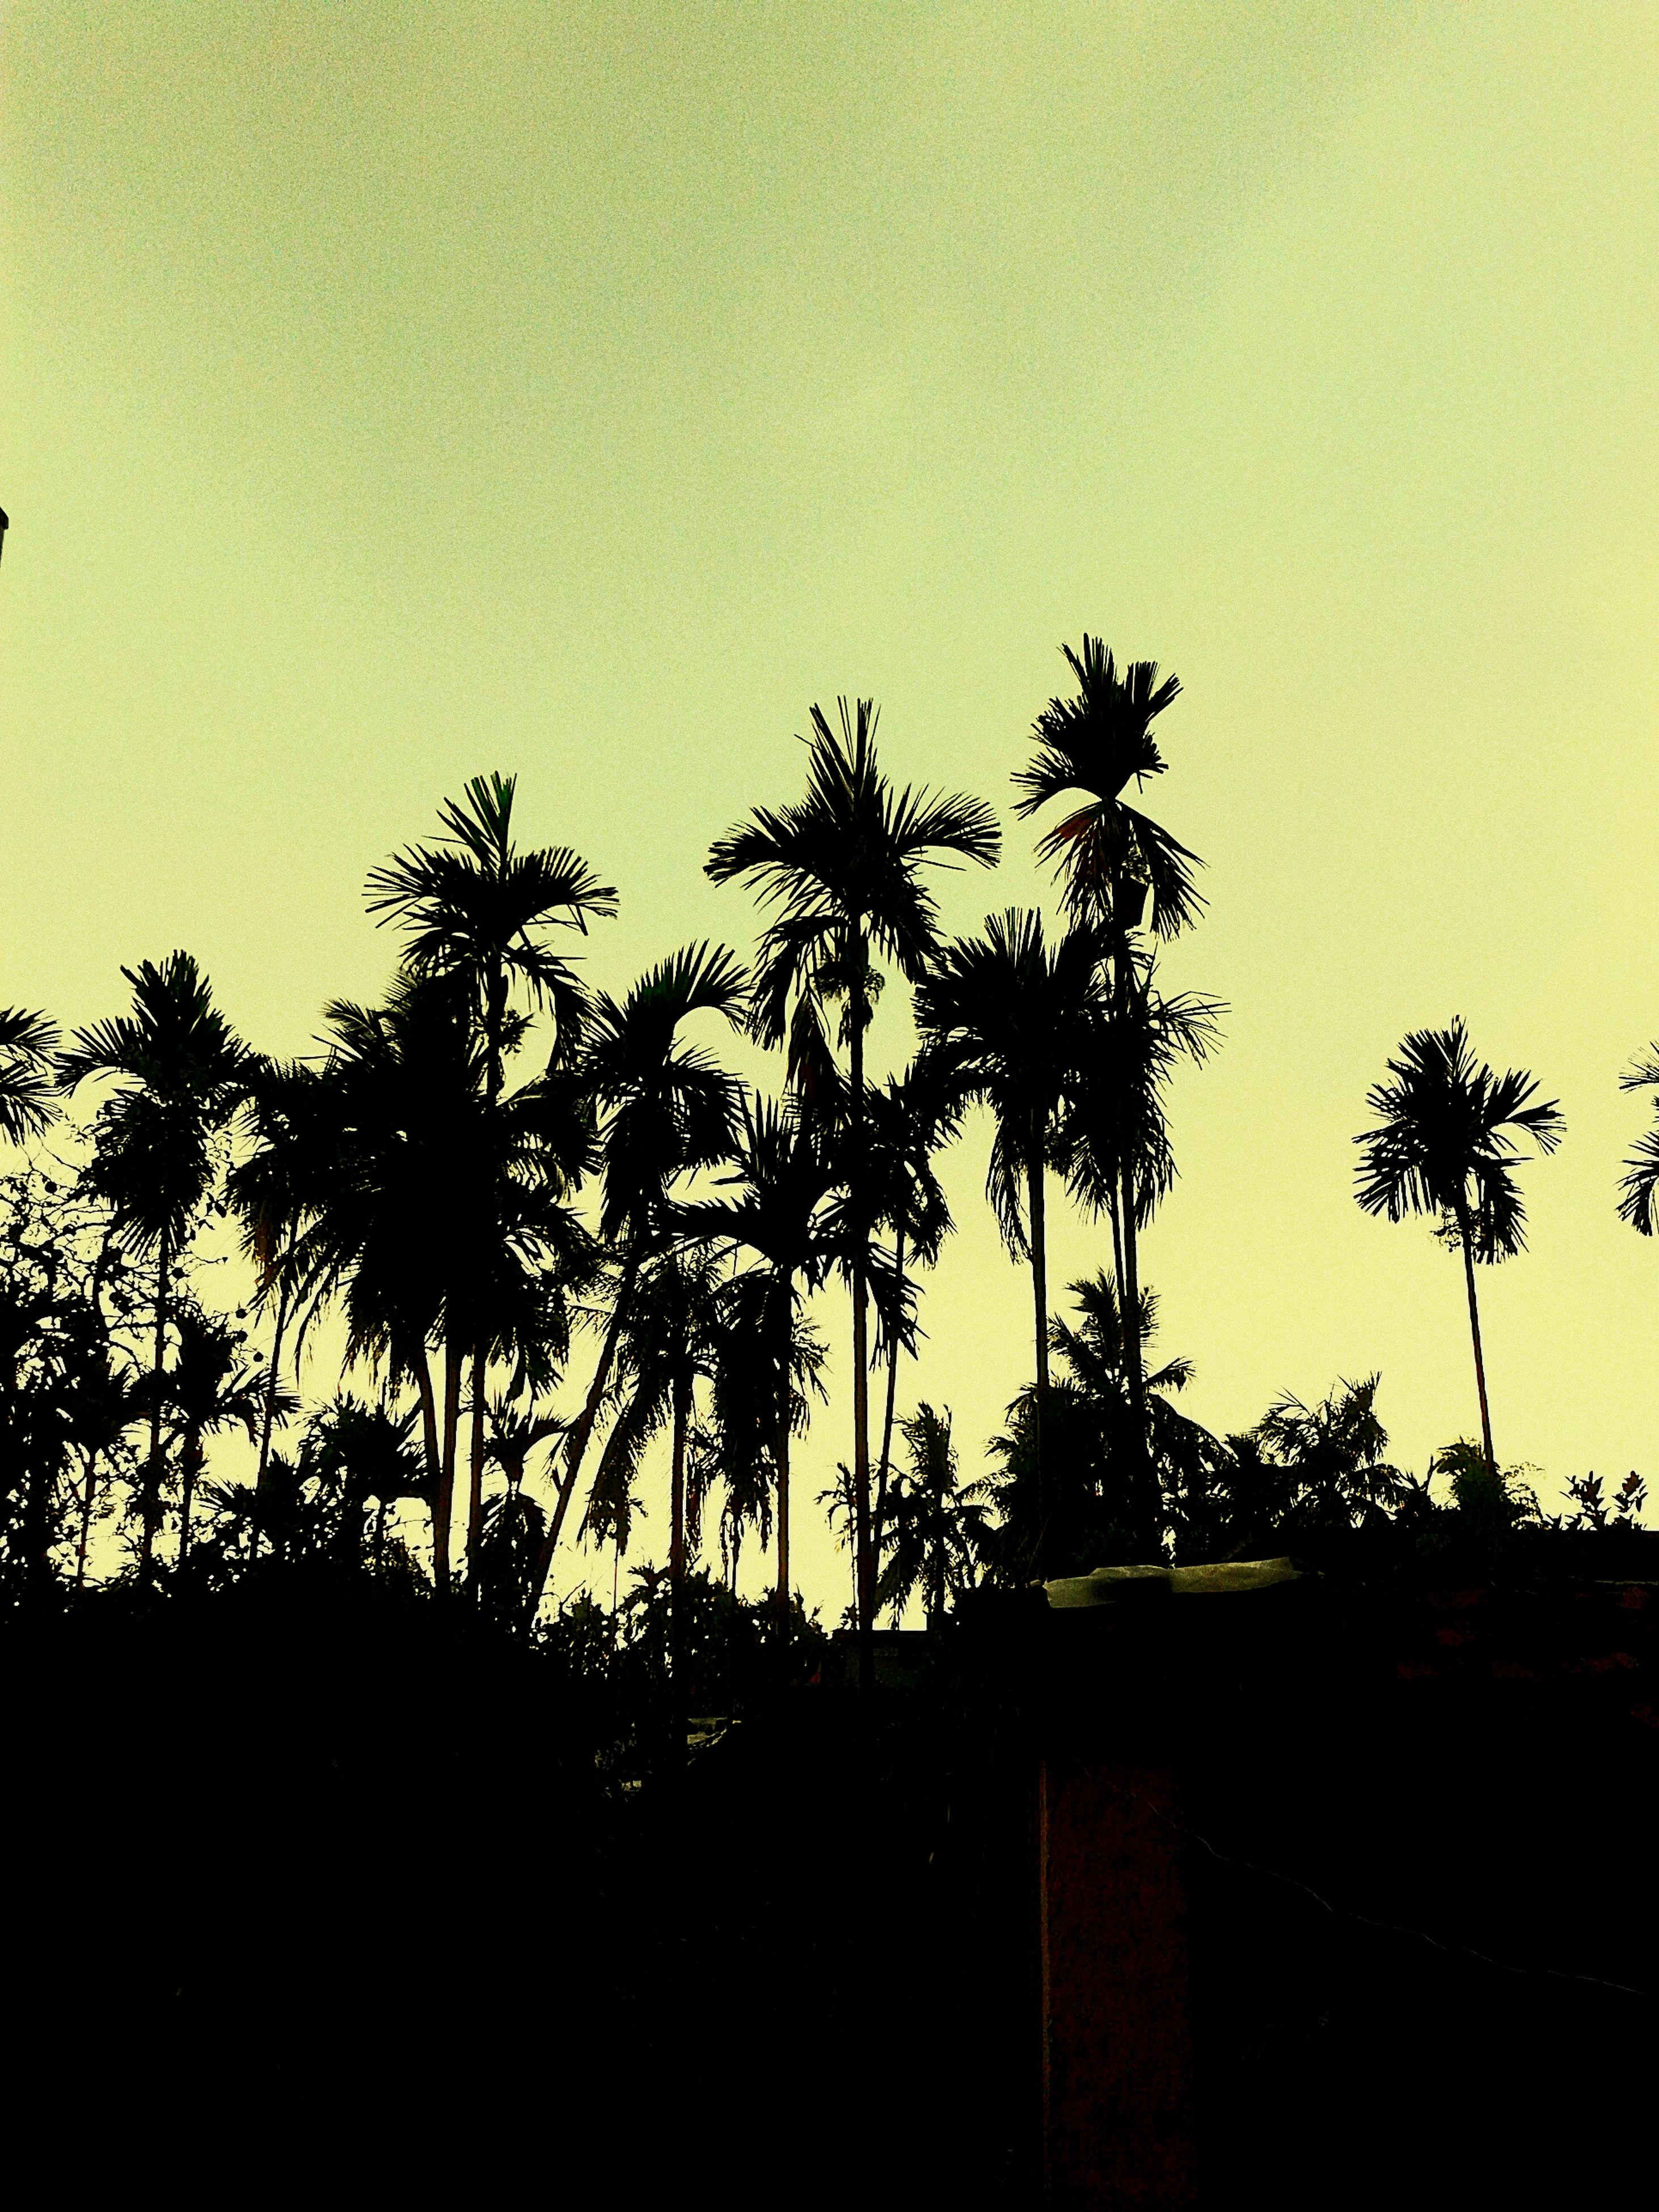 silhouette, clear sky, copy space, growth, sunset, tree, nature, plant, tranquility, sky, beauty in nature, tranquil scene, palm tree, no people, low angle view, outdoors, field, dusk, scenics, branch